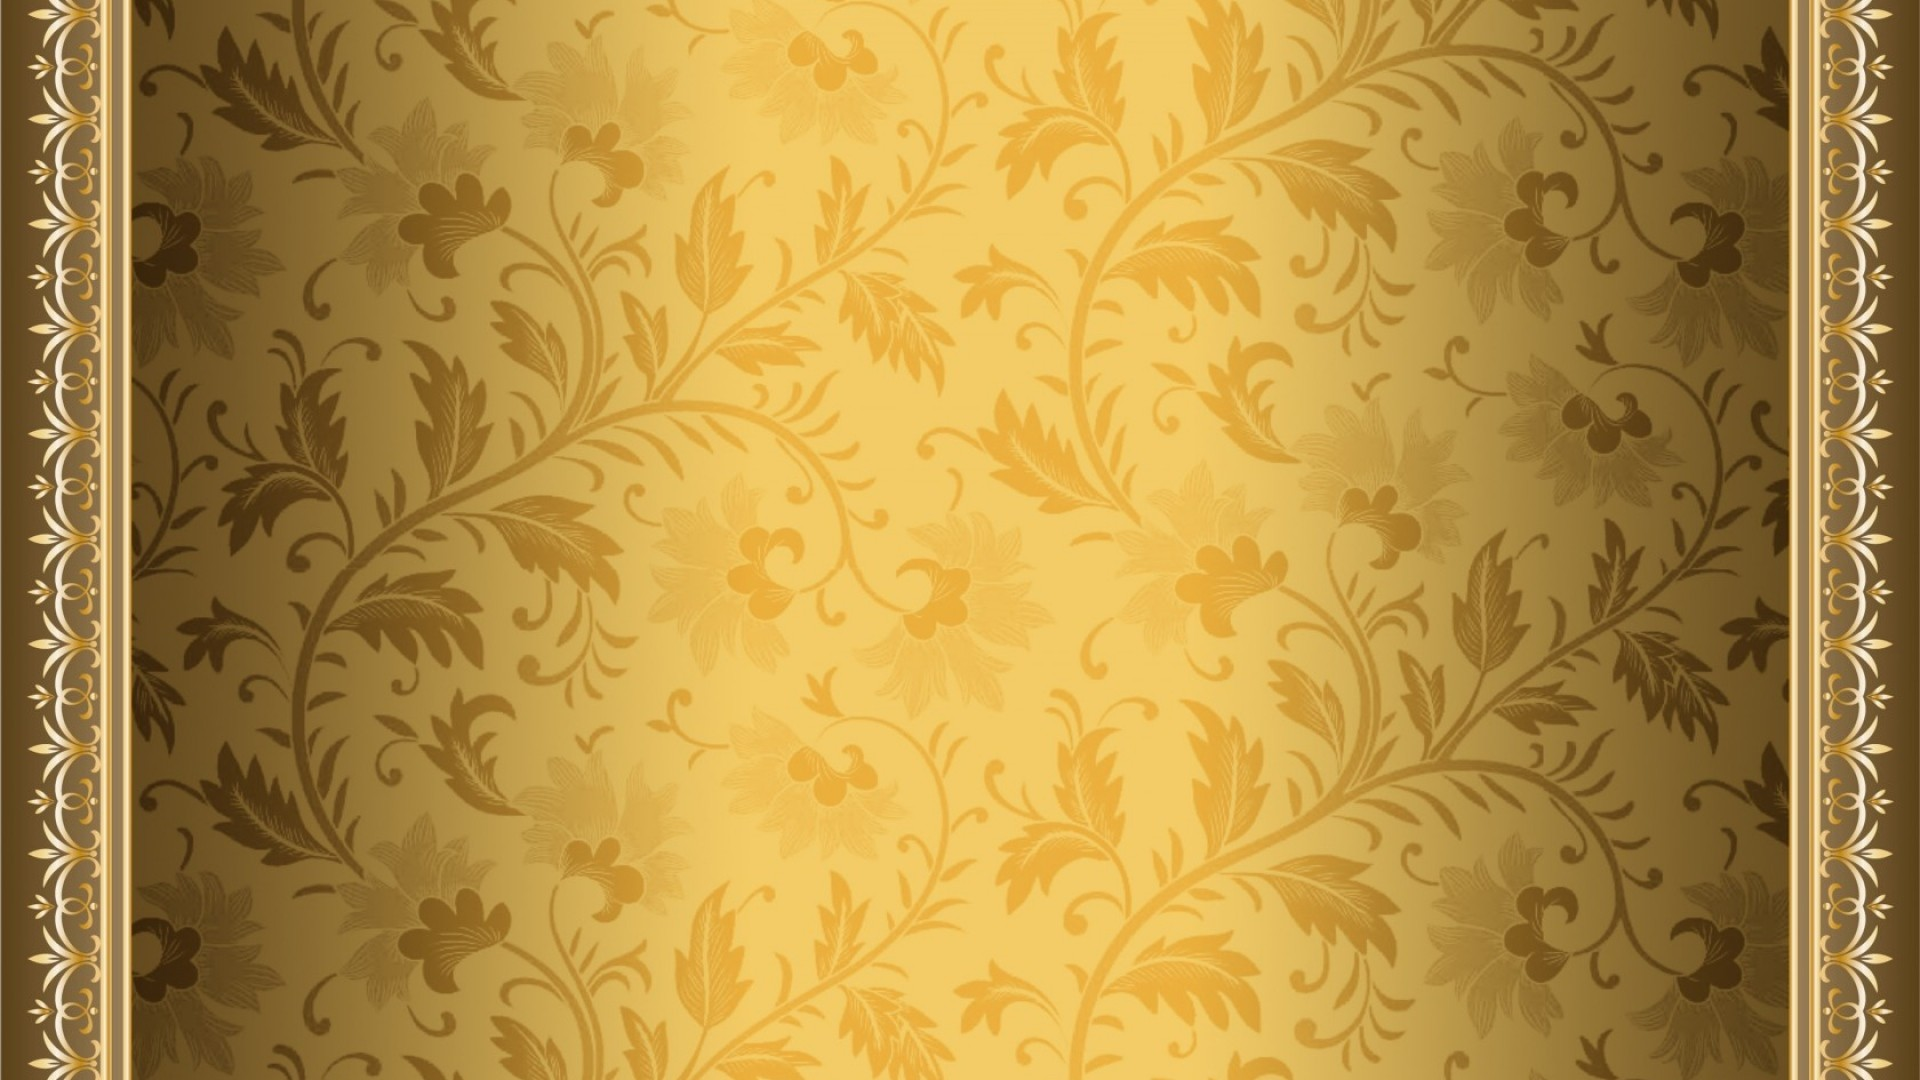 Res: 1920x1080, Get the latest pattern, bronze, texture news, pictures and videos and learn  all about pattern, bronze, texture from wallpapers4u.org, your wallpaper  news ...